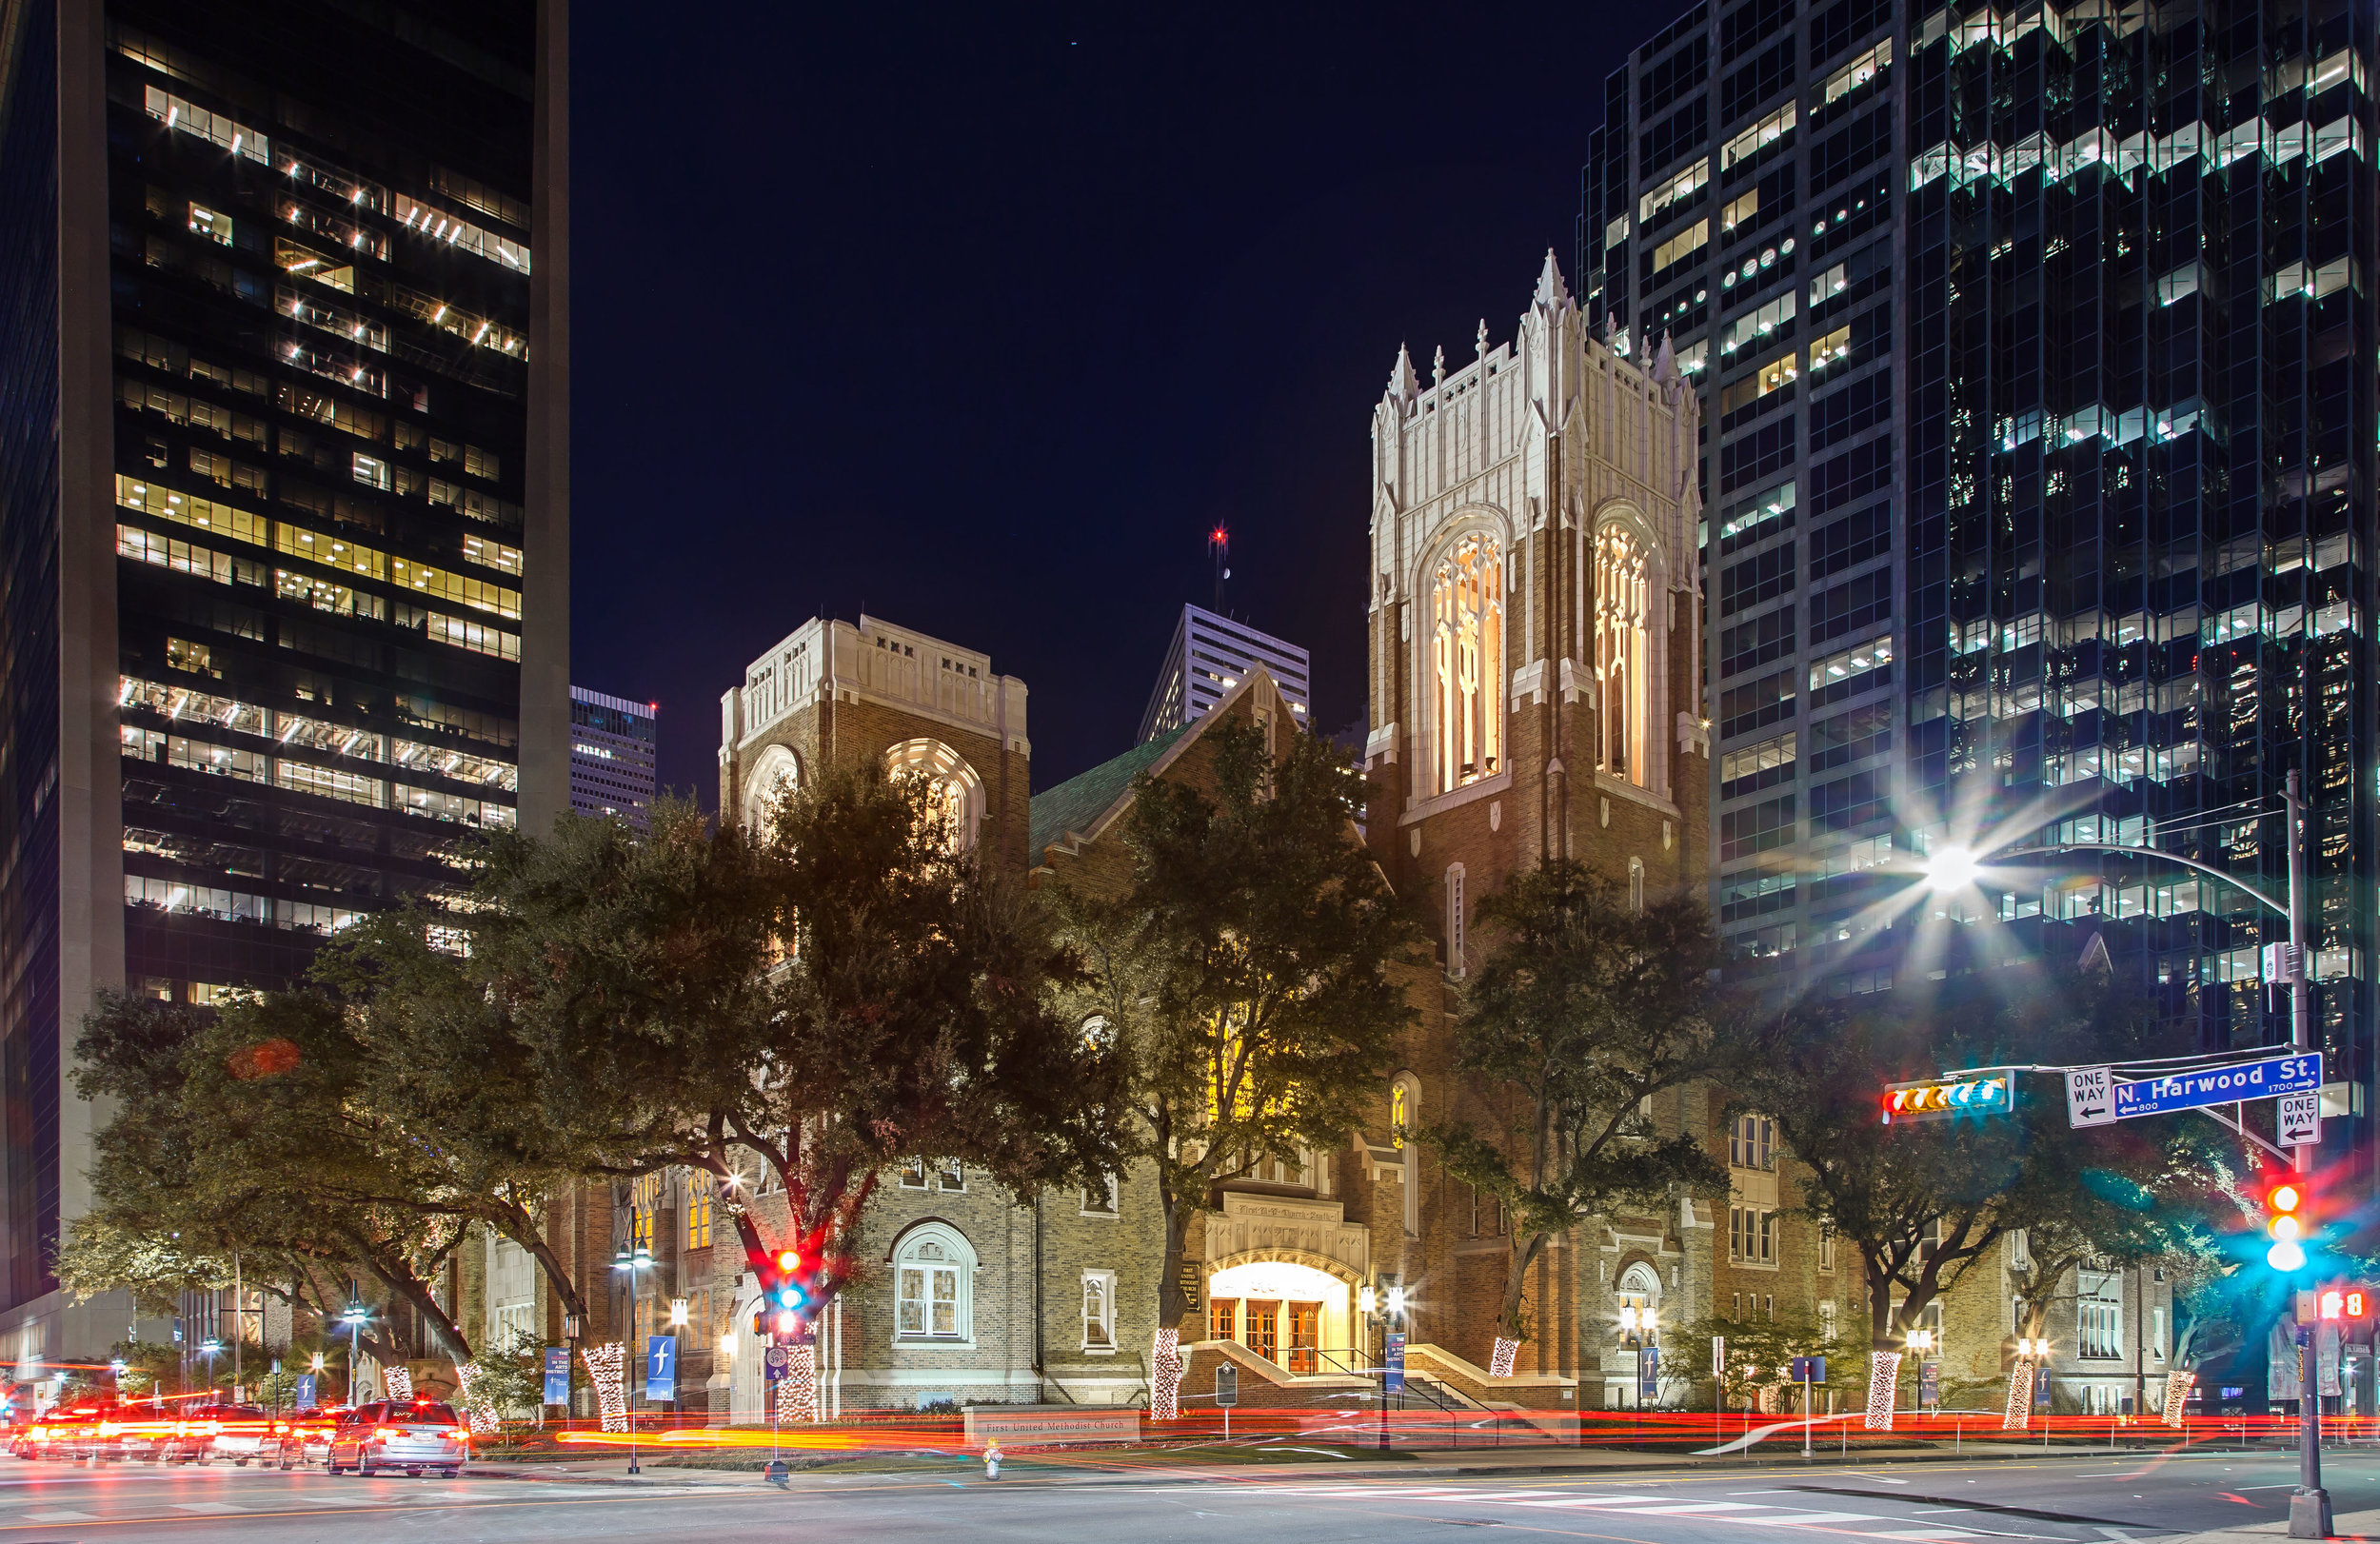 FUMC Dallas_Night_2016-1114_001.jpg